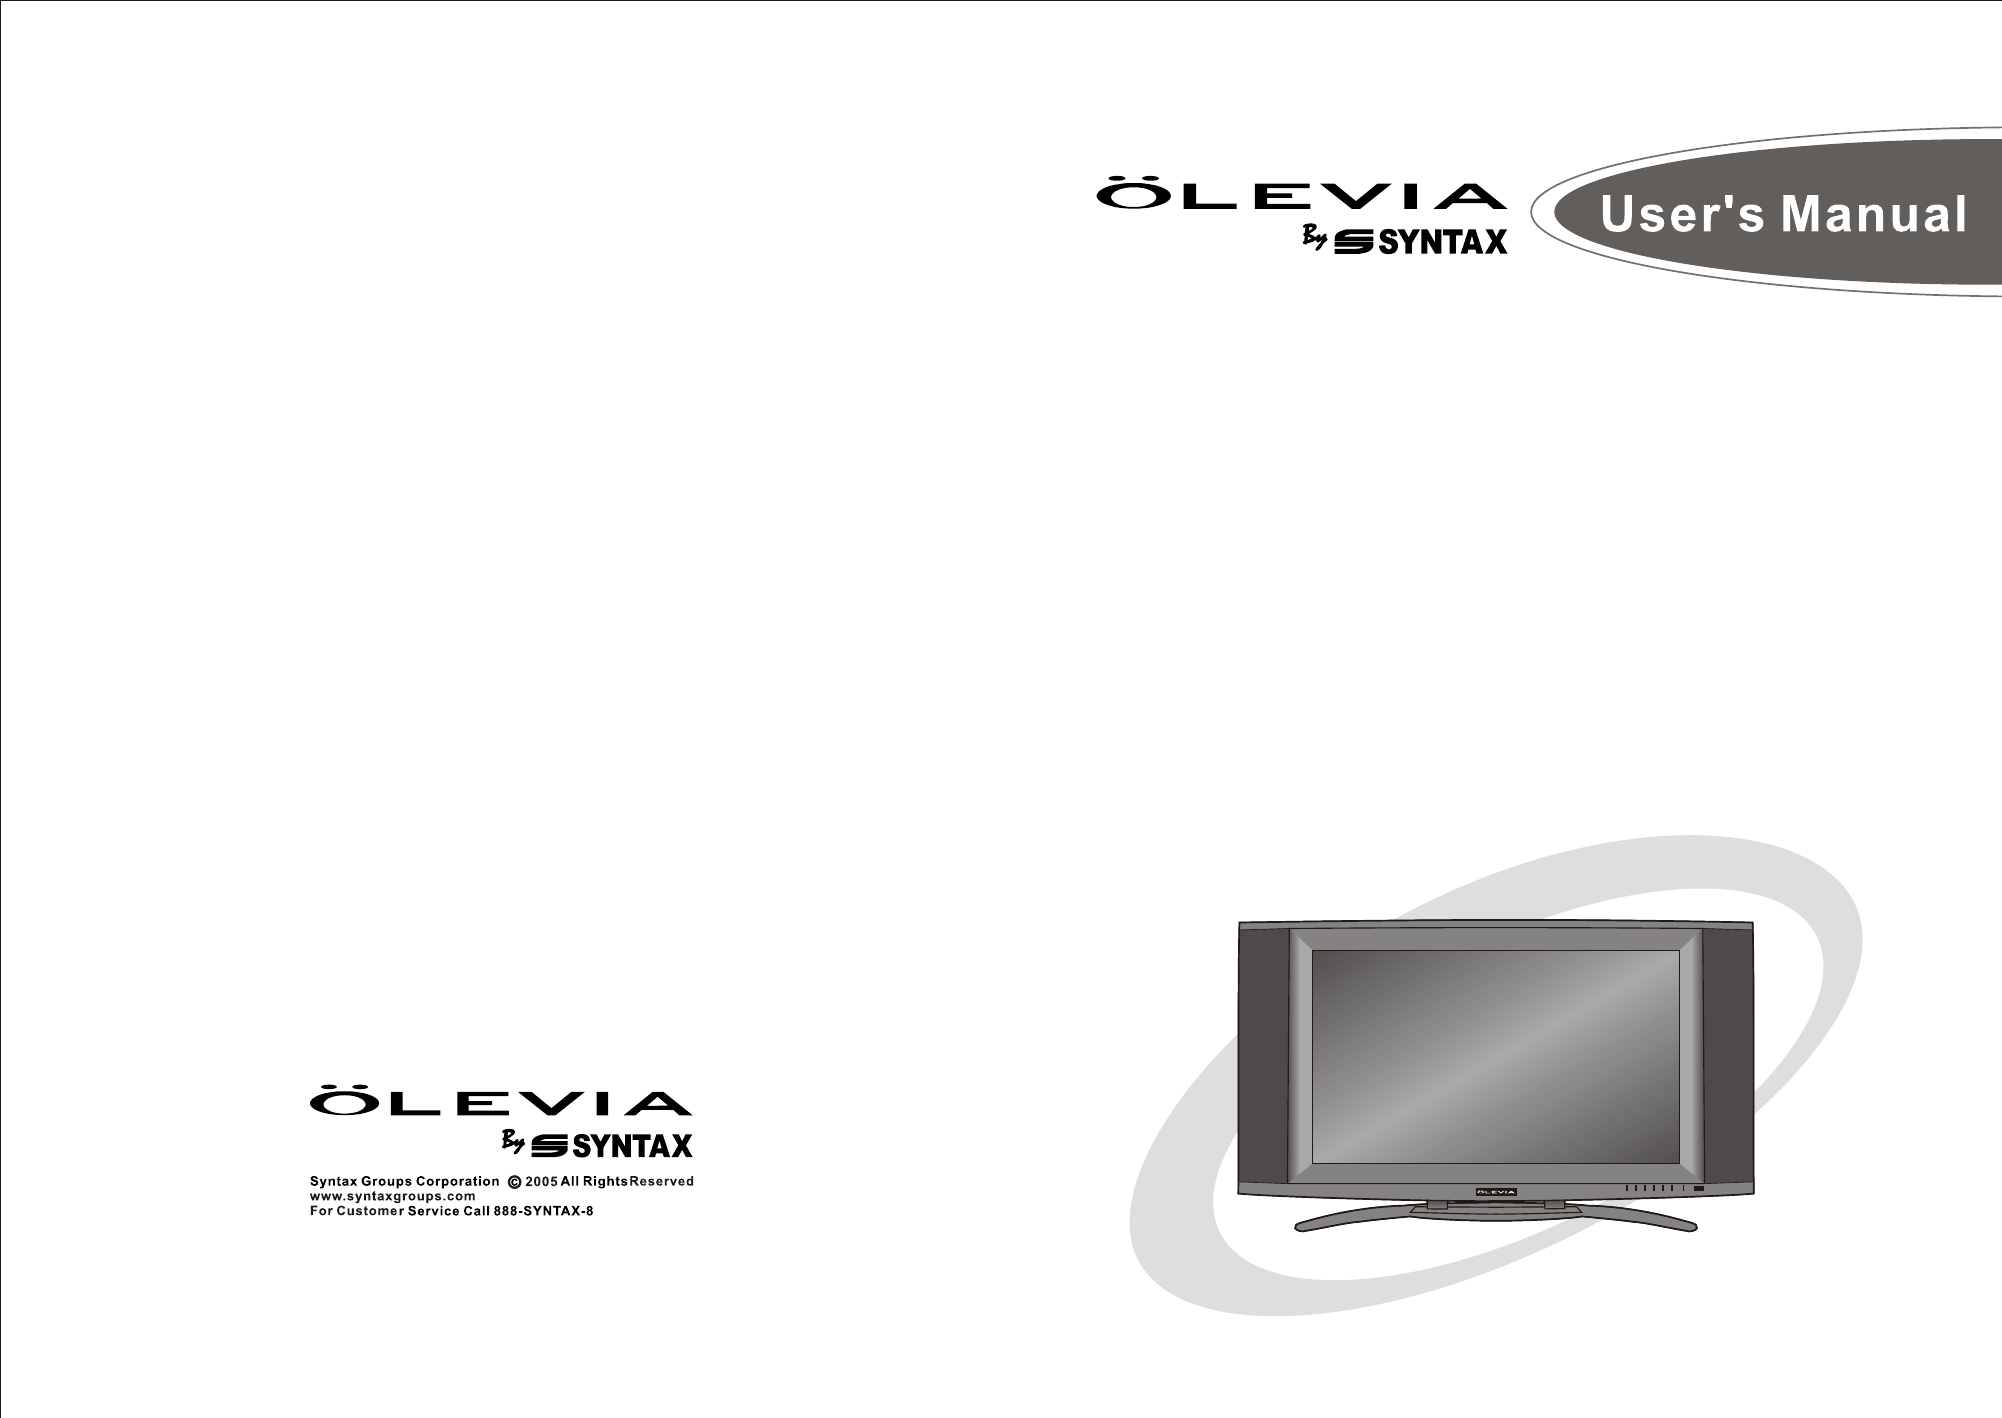 olevia flat panel television lt37hvs user guide manualsonline com rh tv manualsonline com Olevia TV Parts Olevia TV Troubleshooting